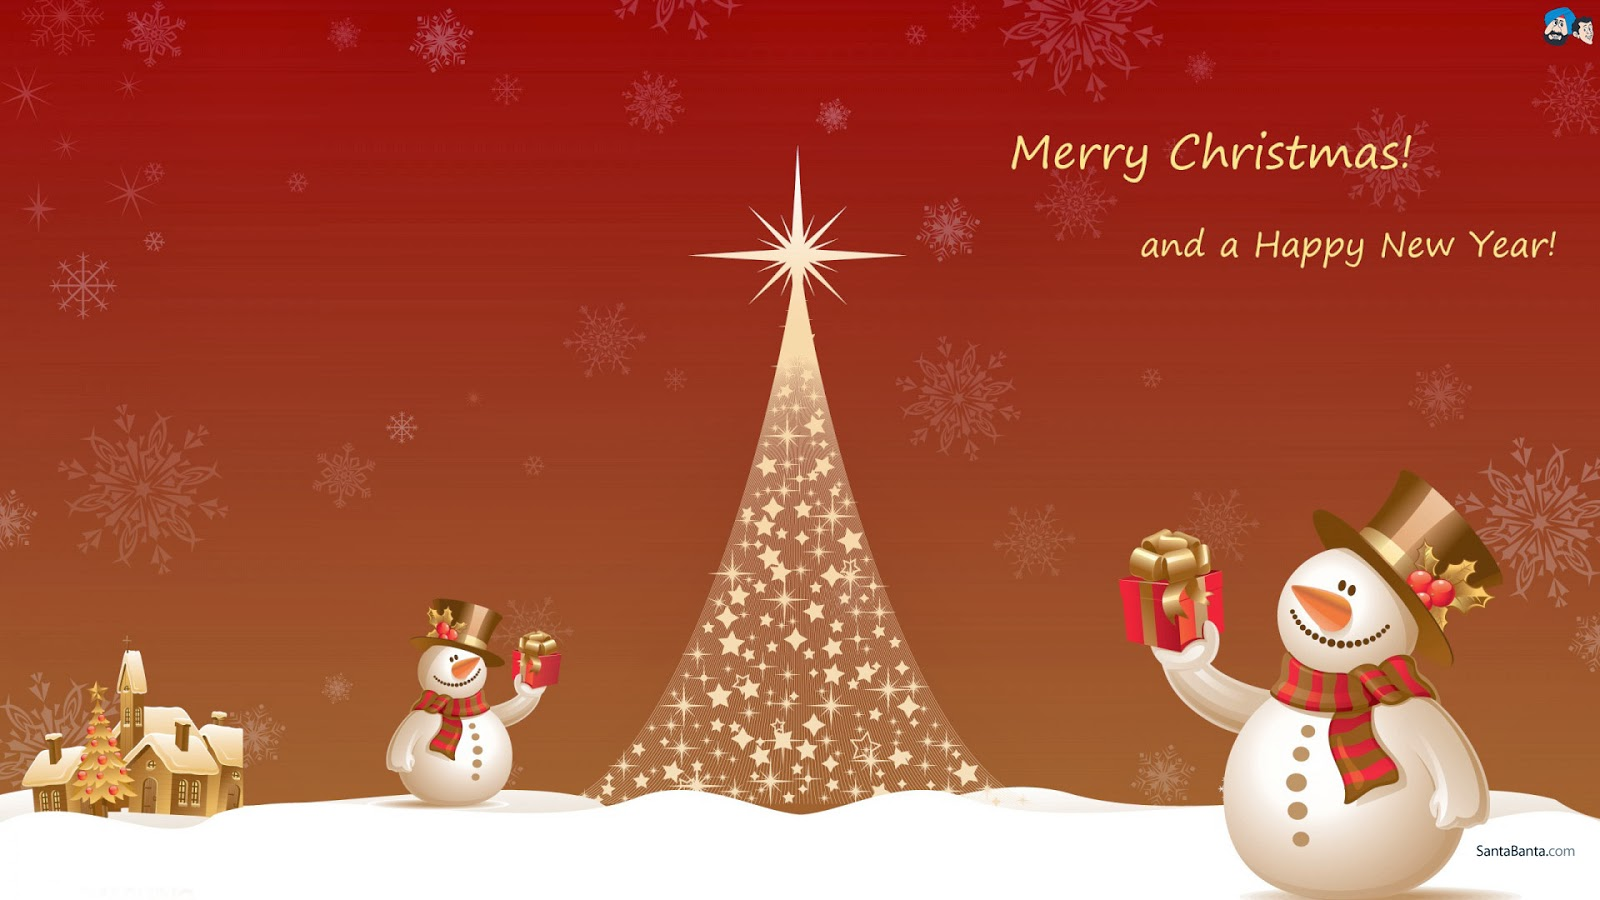 Merry christmas e card greeting photo 2017 inspiring quotes and download hd christmas new year 2017 bible verse greetings card wa kristyandbryce Gallery